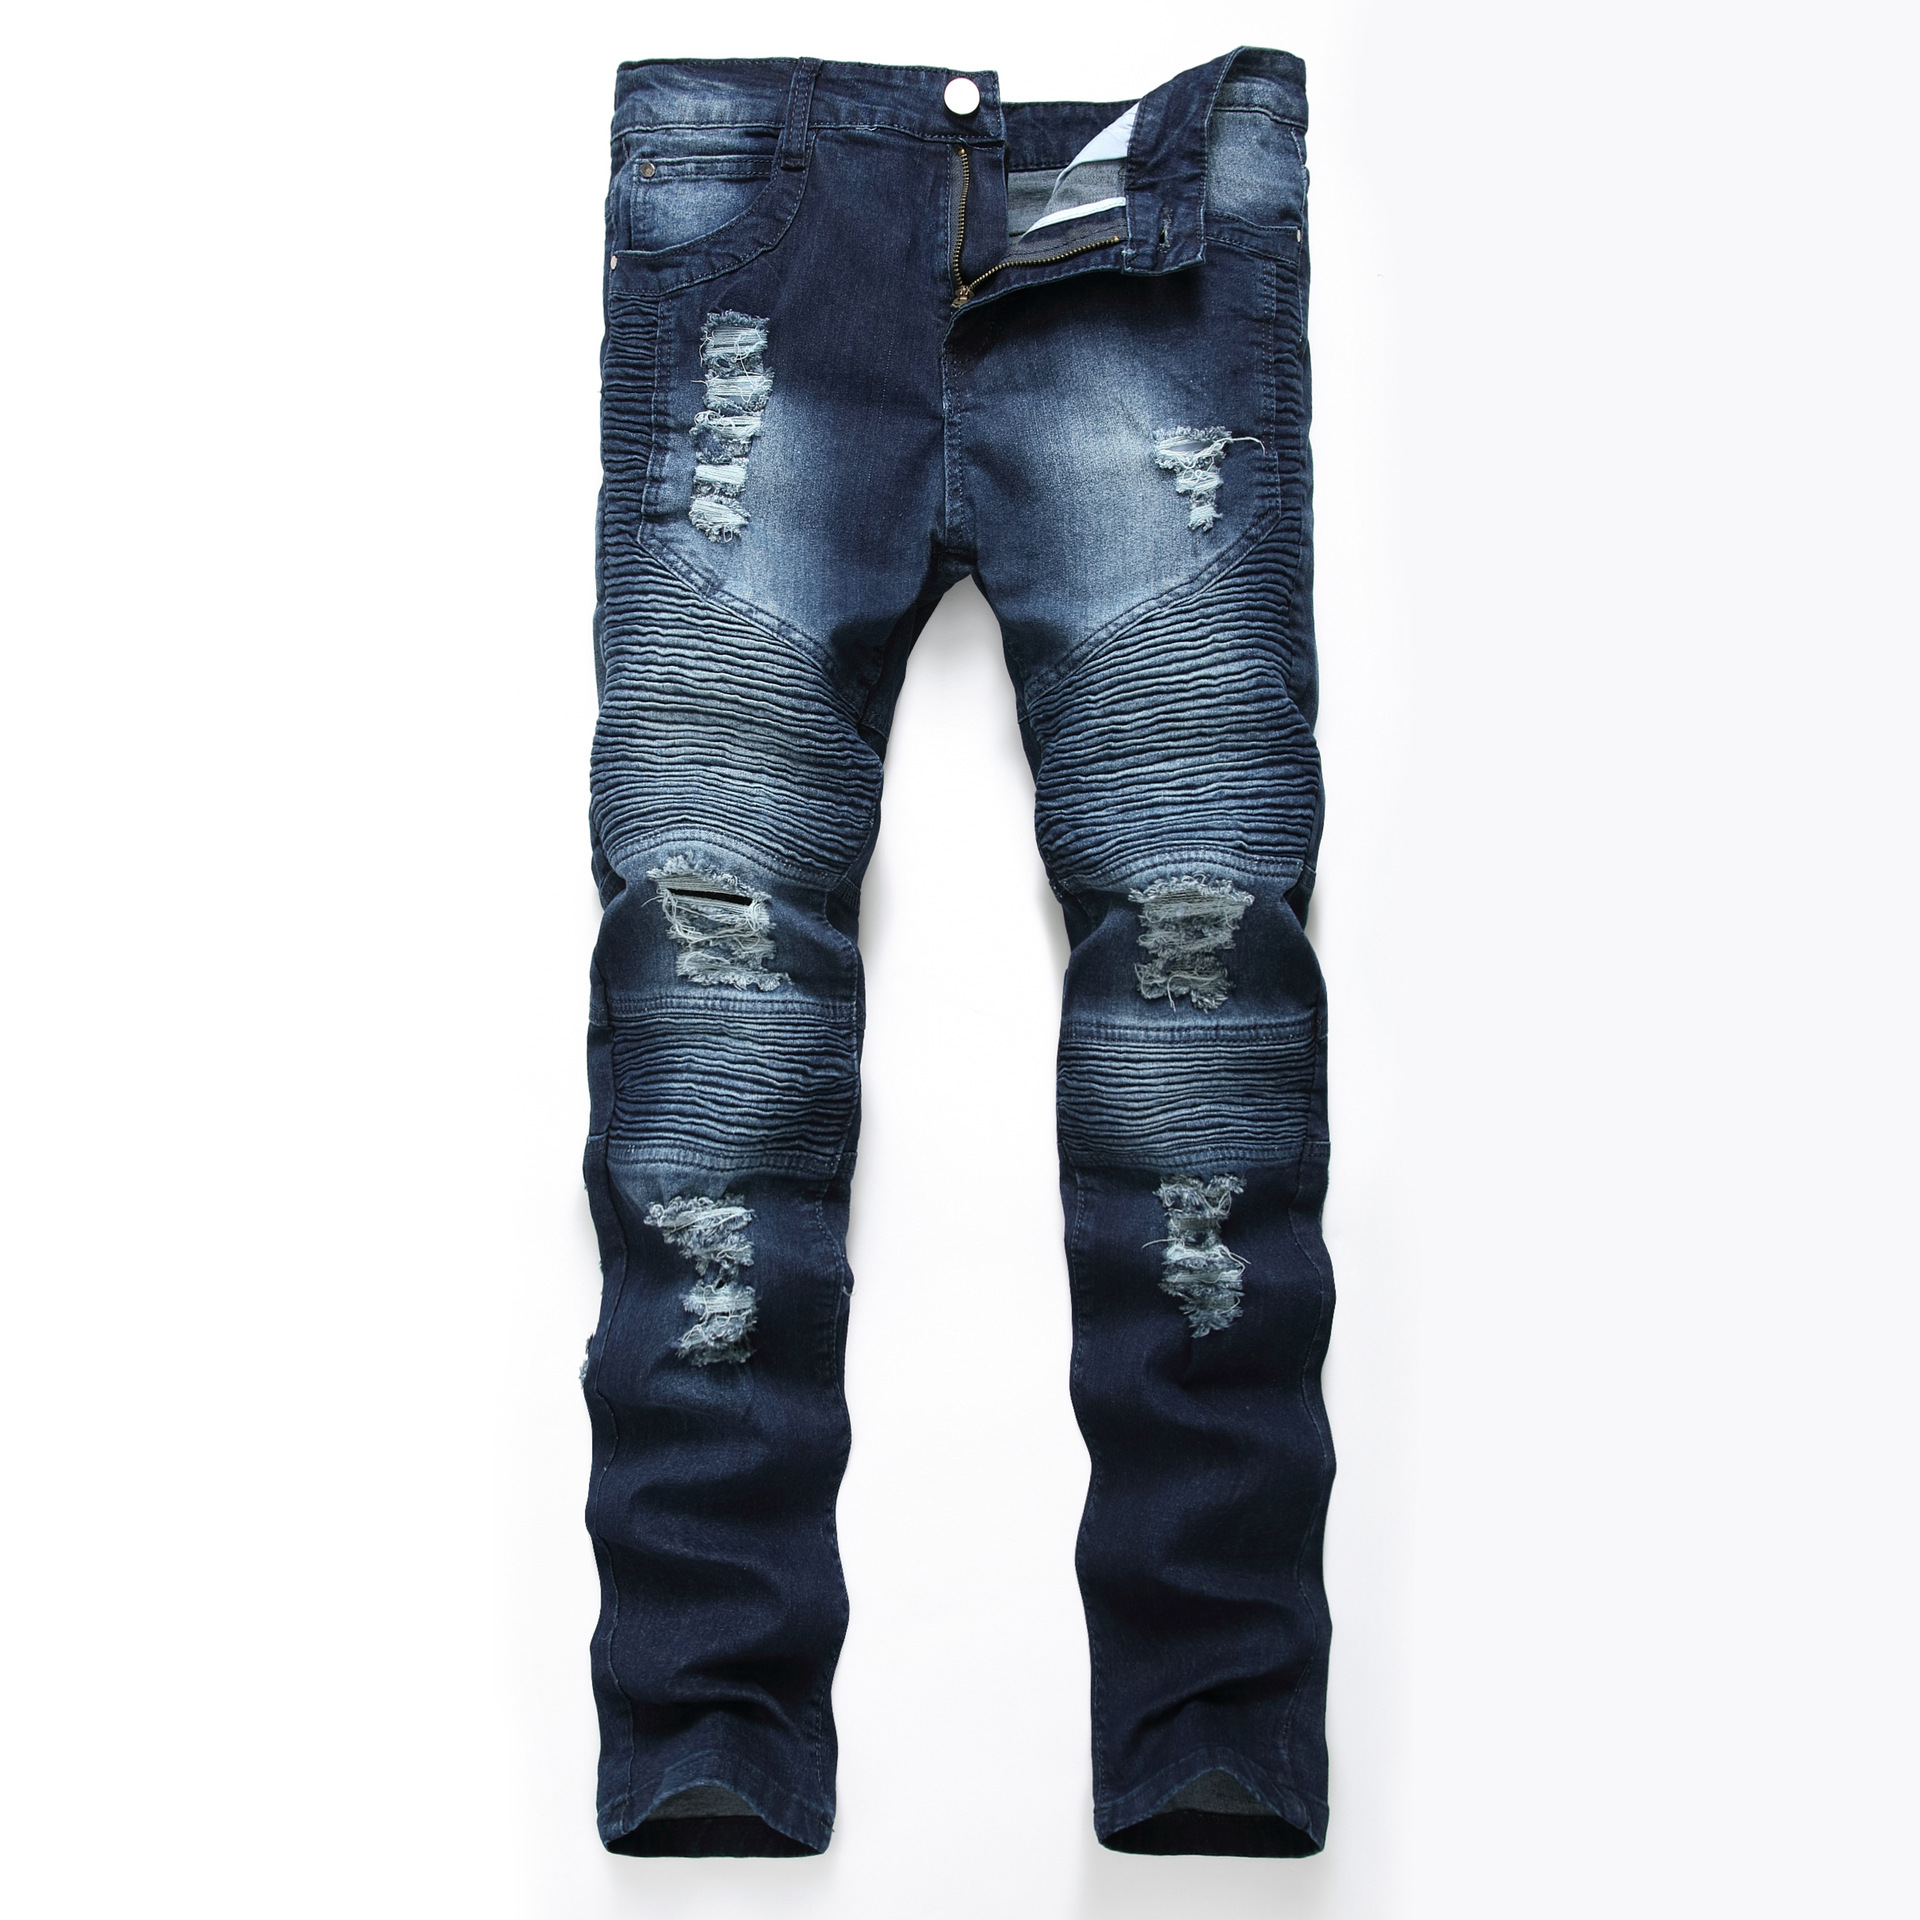 2017 hip-hop Men Jeans masculina Casual Denim distressed Mens Slim Jeans pants Brand Biker jeans skinny rock ripped jeans homme